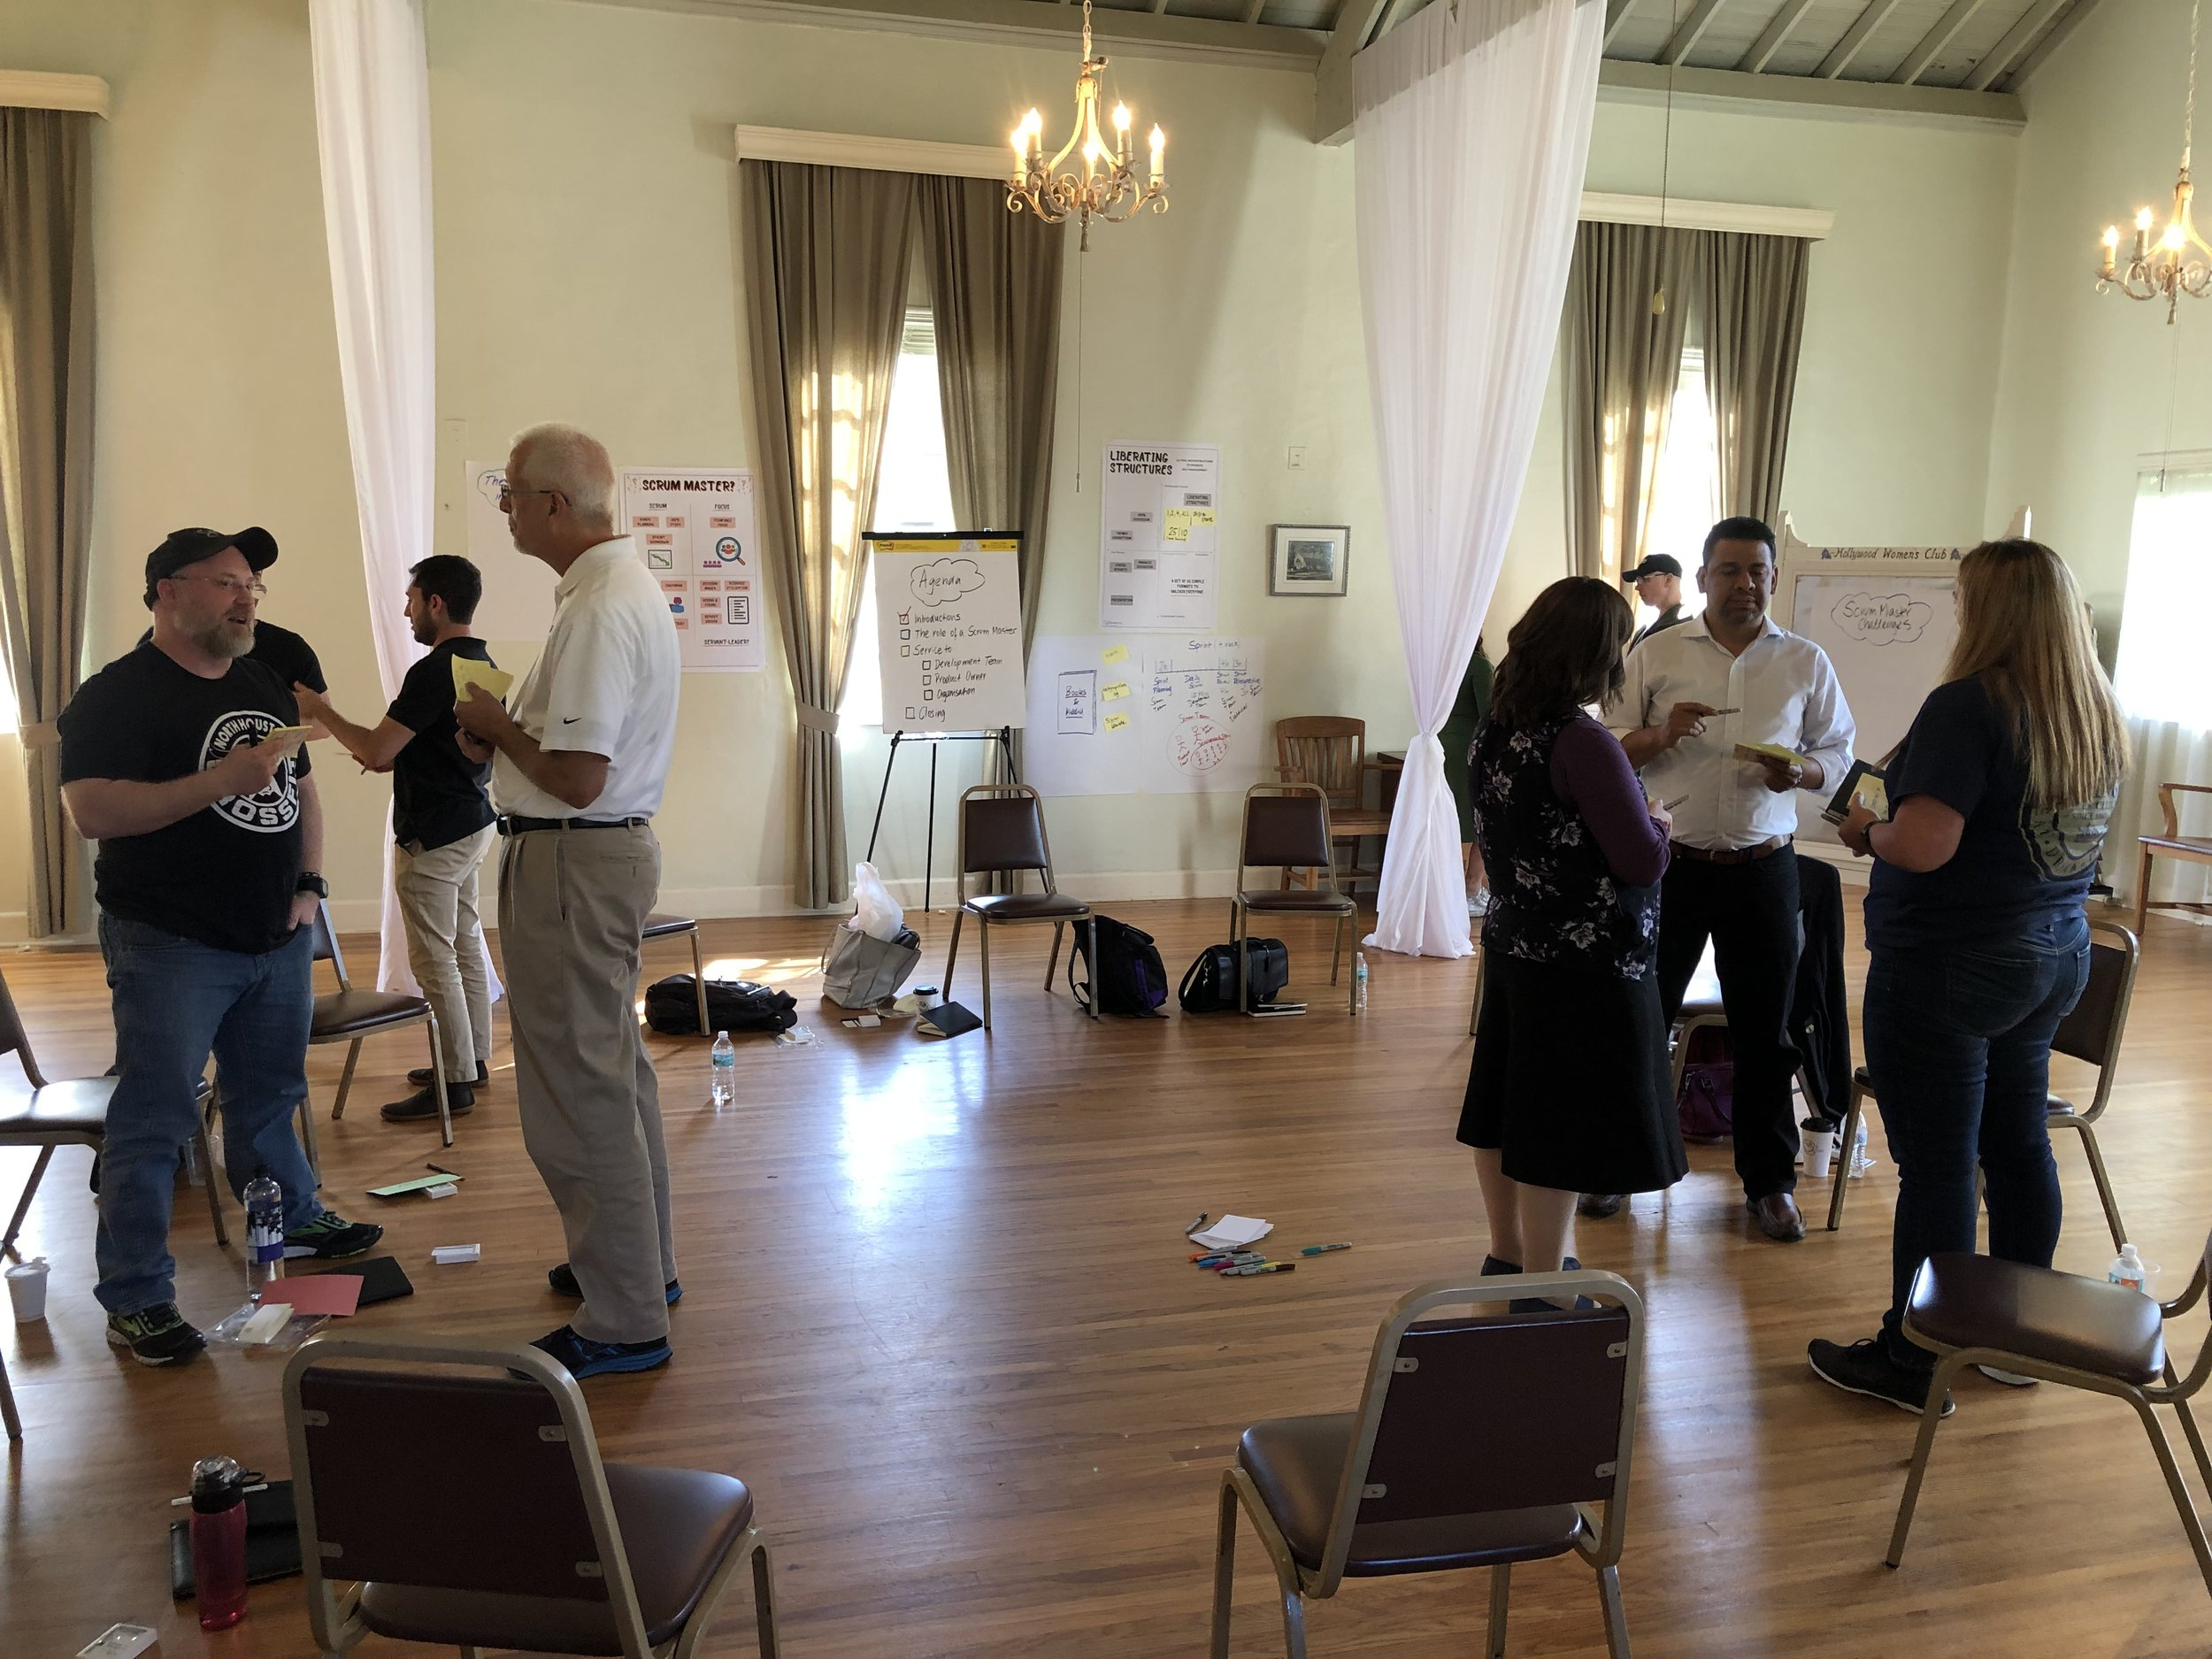 The Training - Agile Leadership Certification is hands-on, practical and covers leadership development, culture, agile transformation and evidence based management topics to name a few.